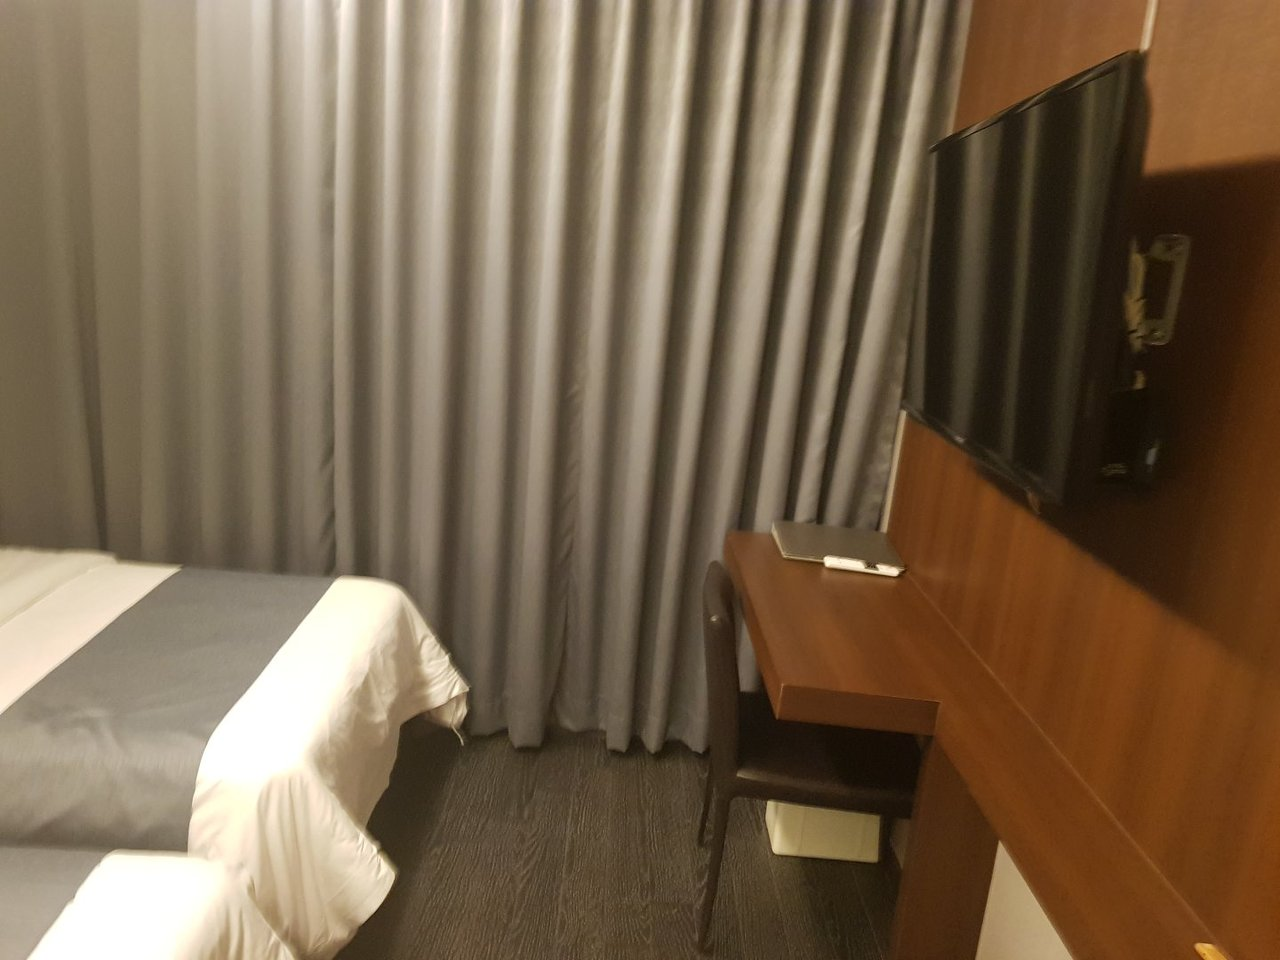 Grand Palace Hotel 54 6 3 Prices Reviews Incheon